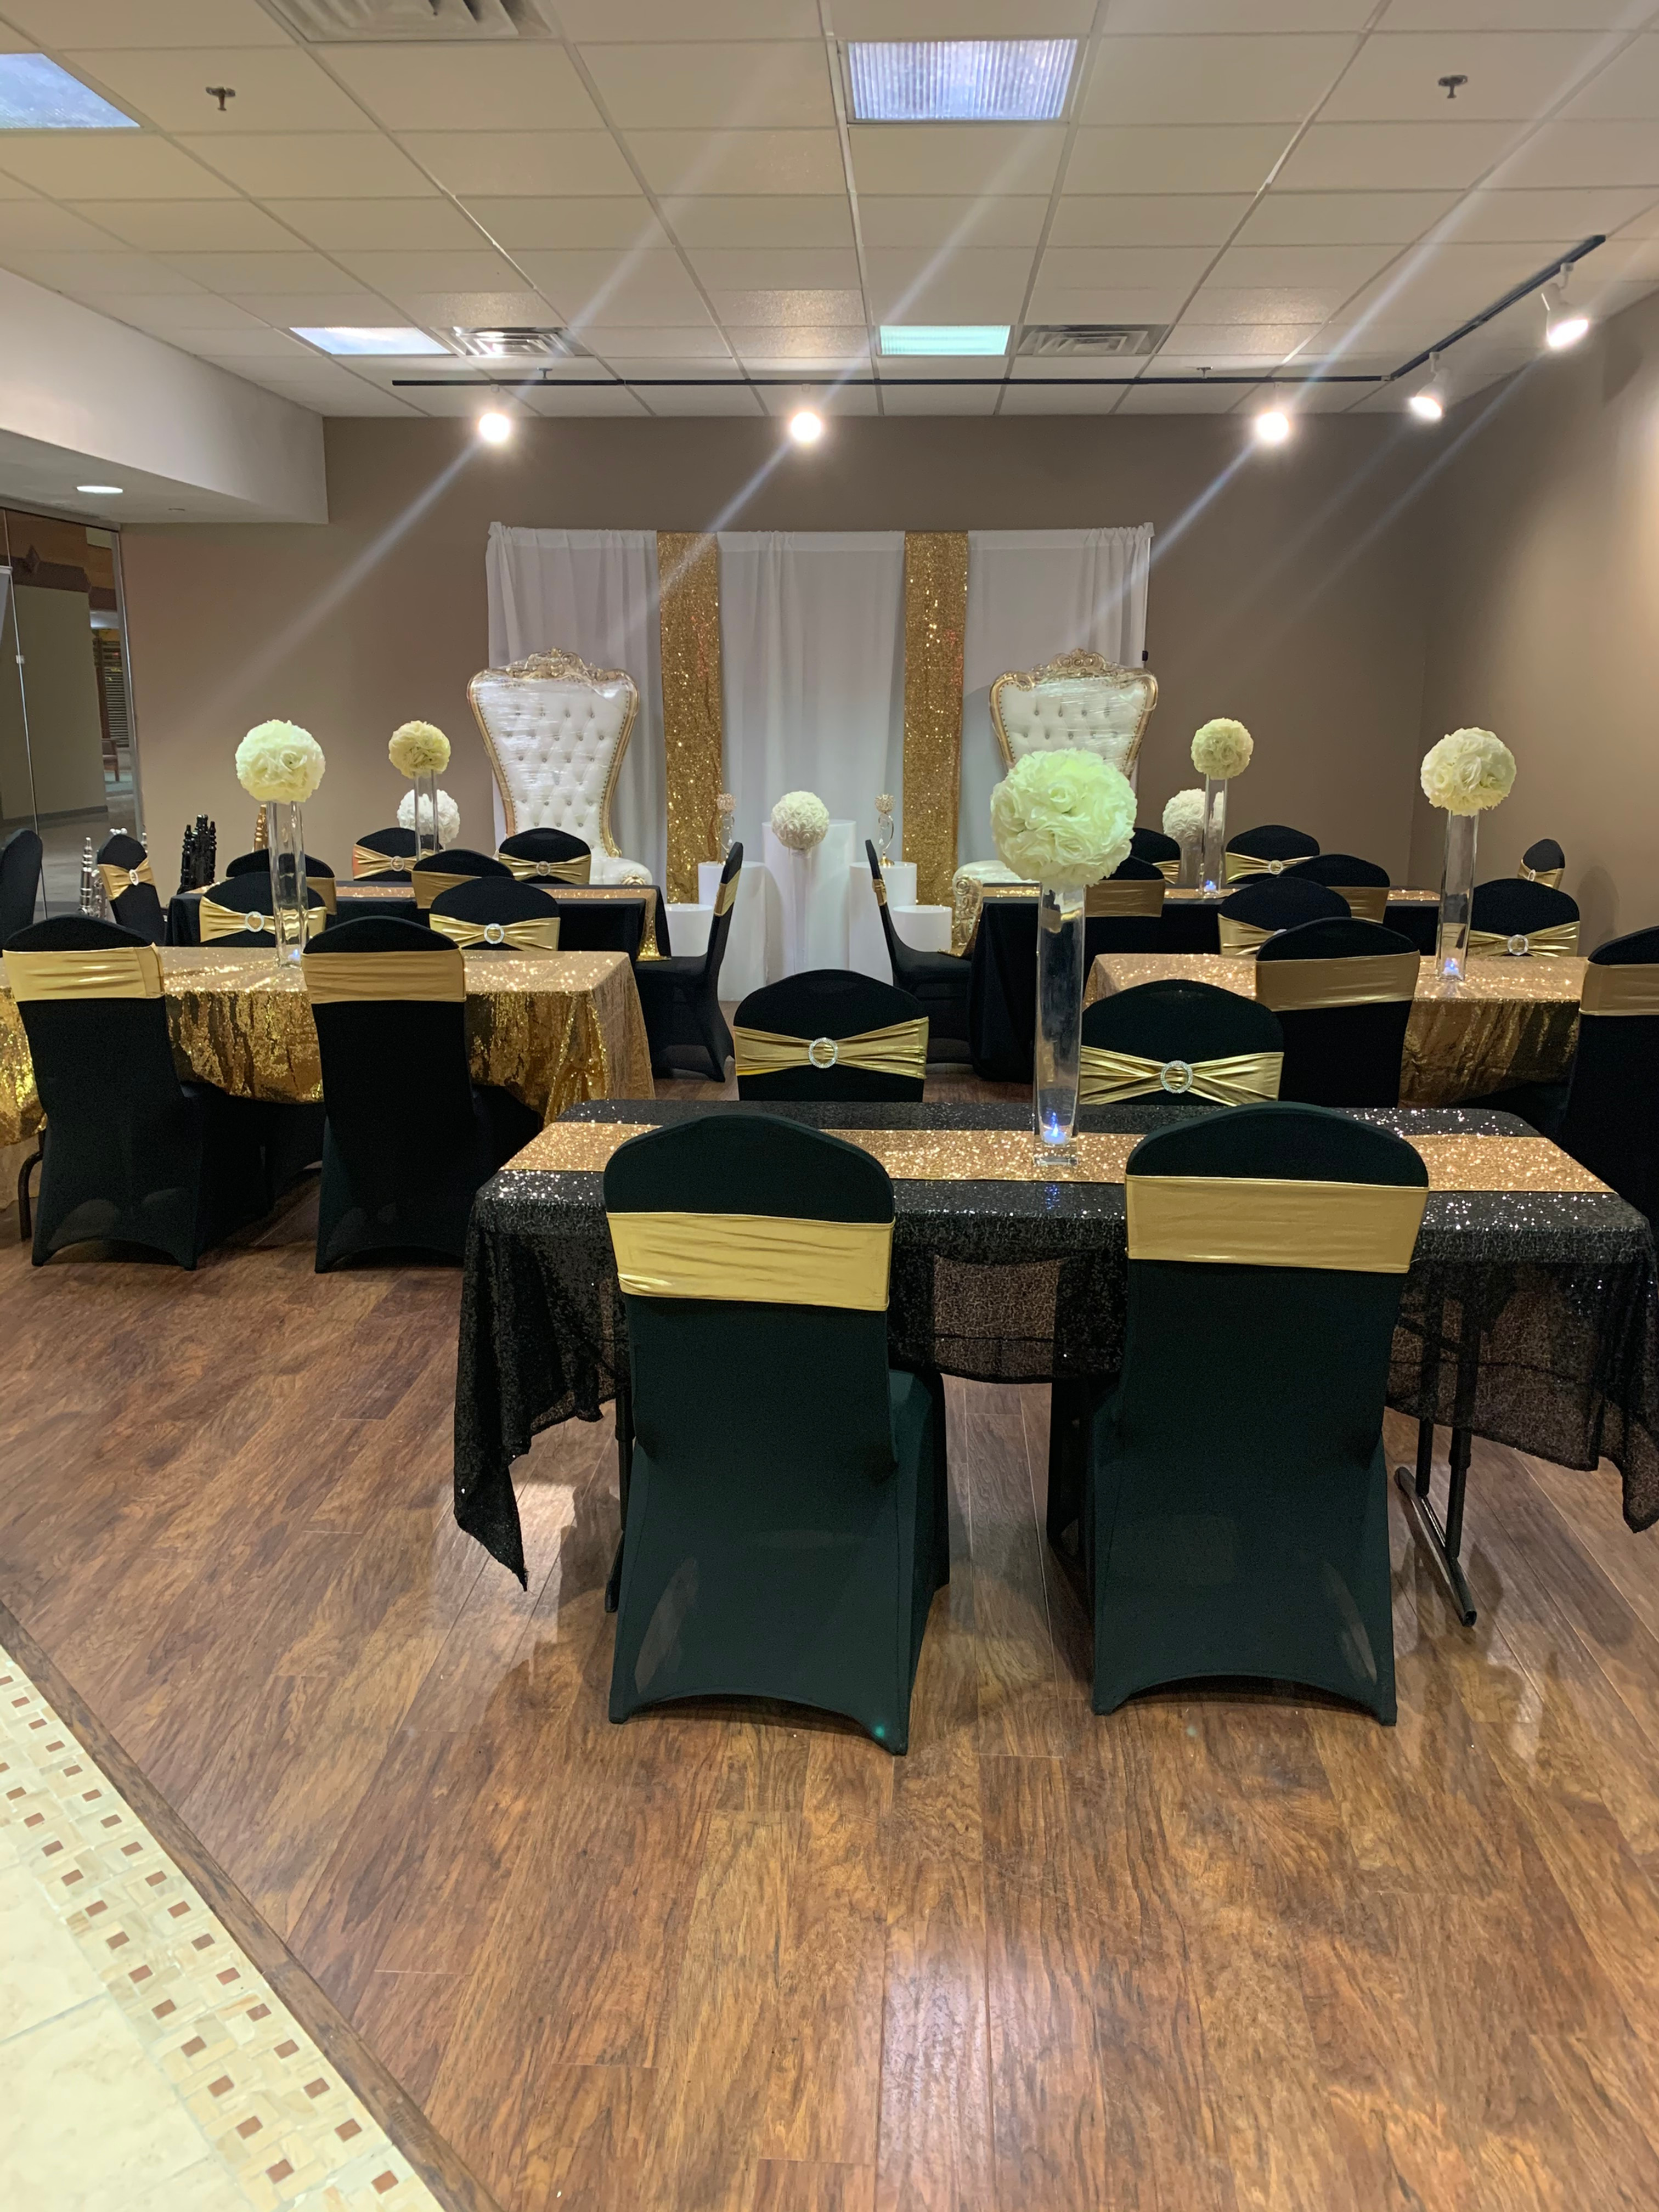 6 Hour Event Space Rental